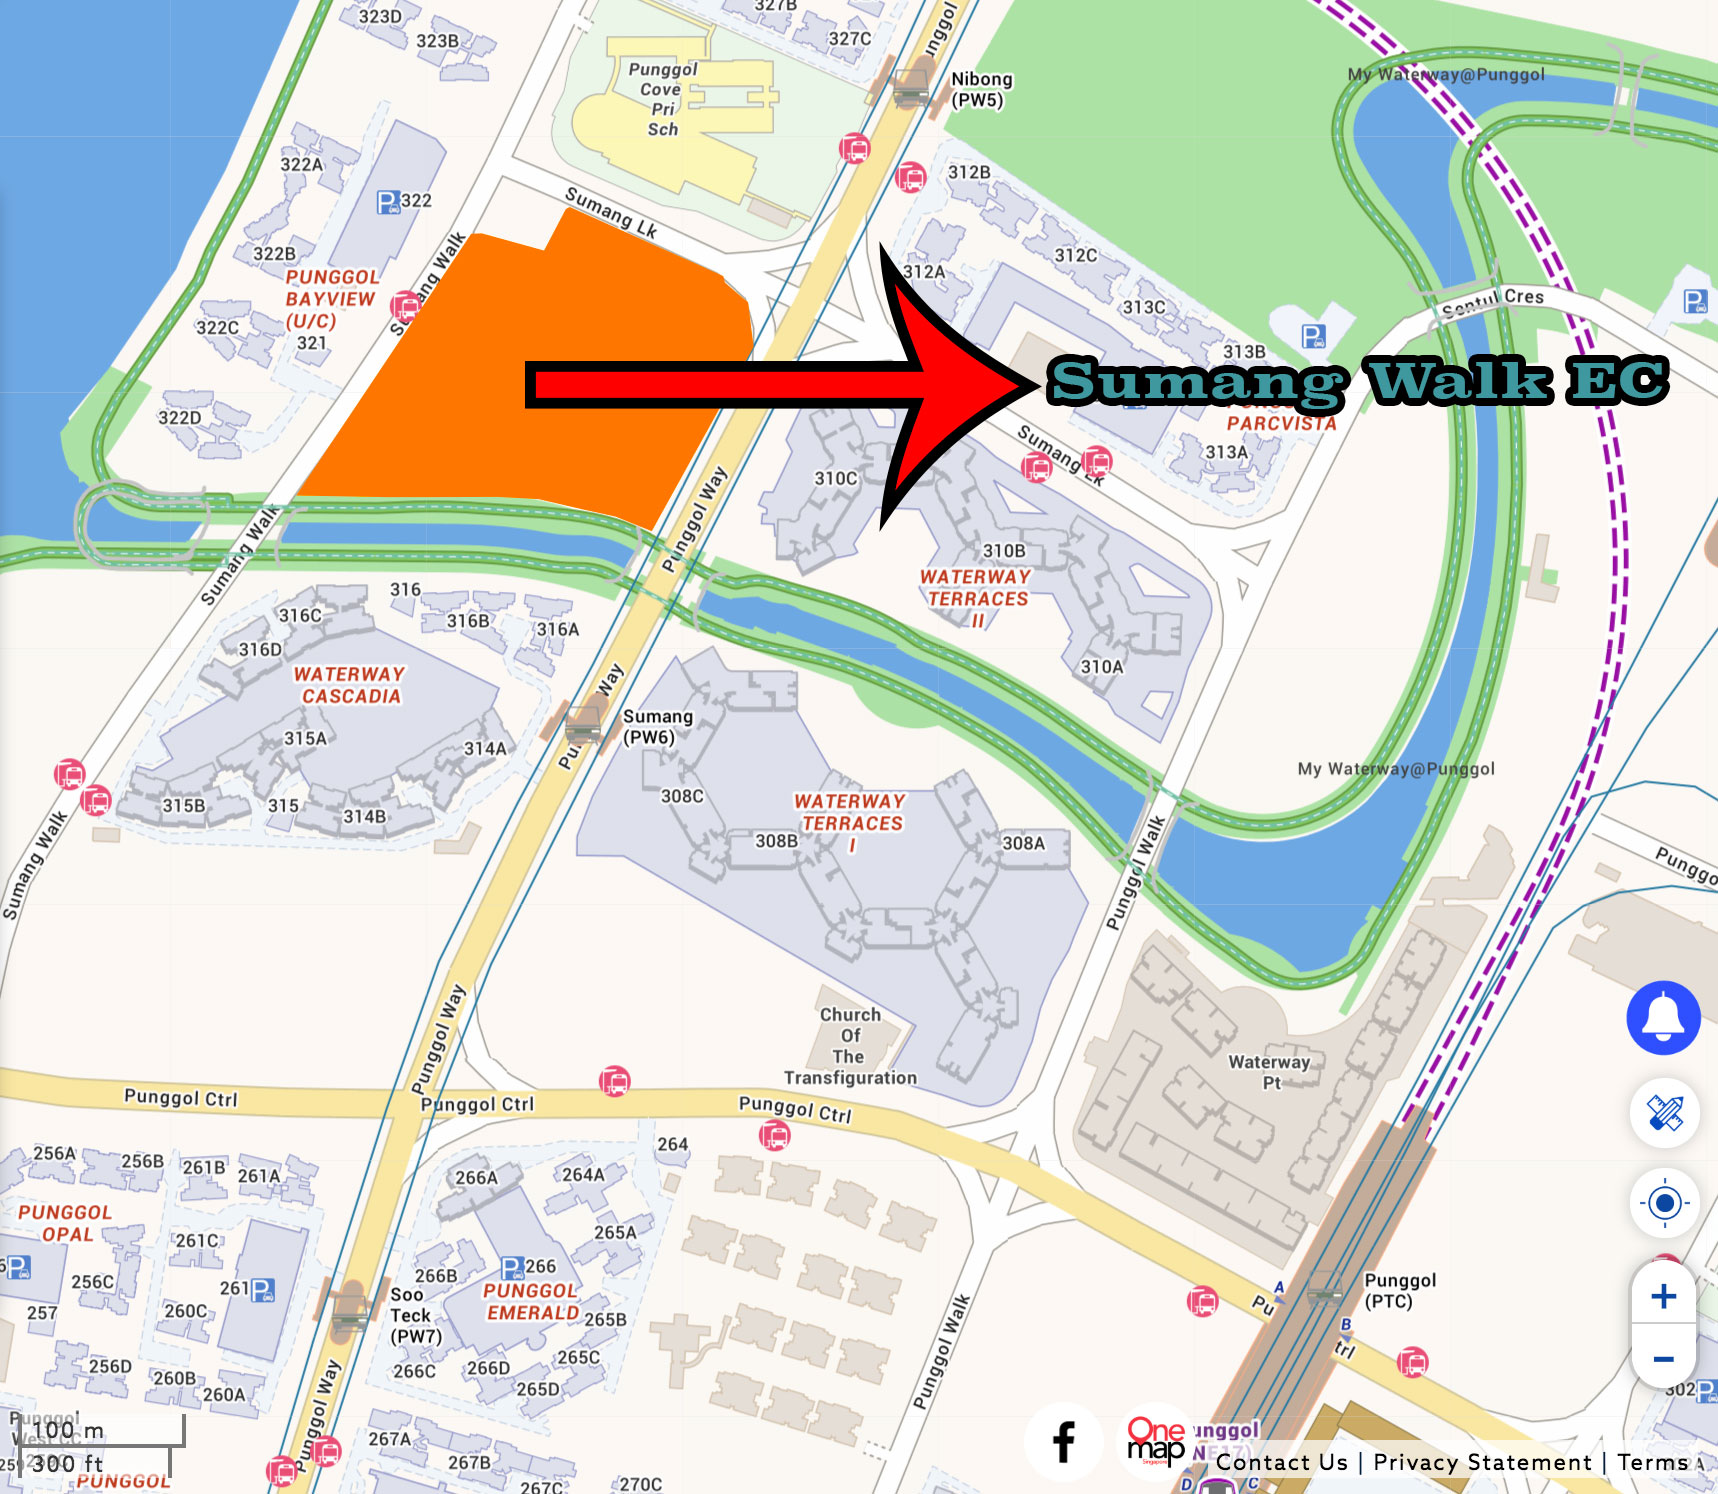 Piermont Grand - Location map of Punggol EC at Sumang Walk launching in 2019